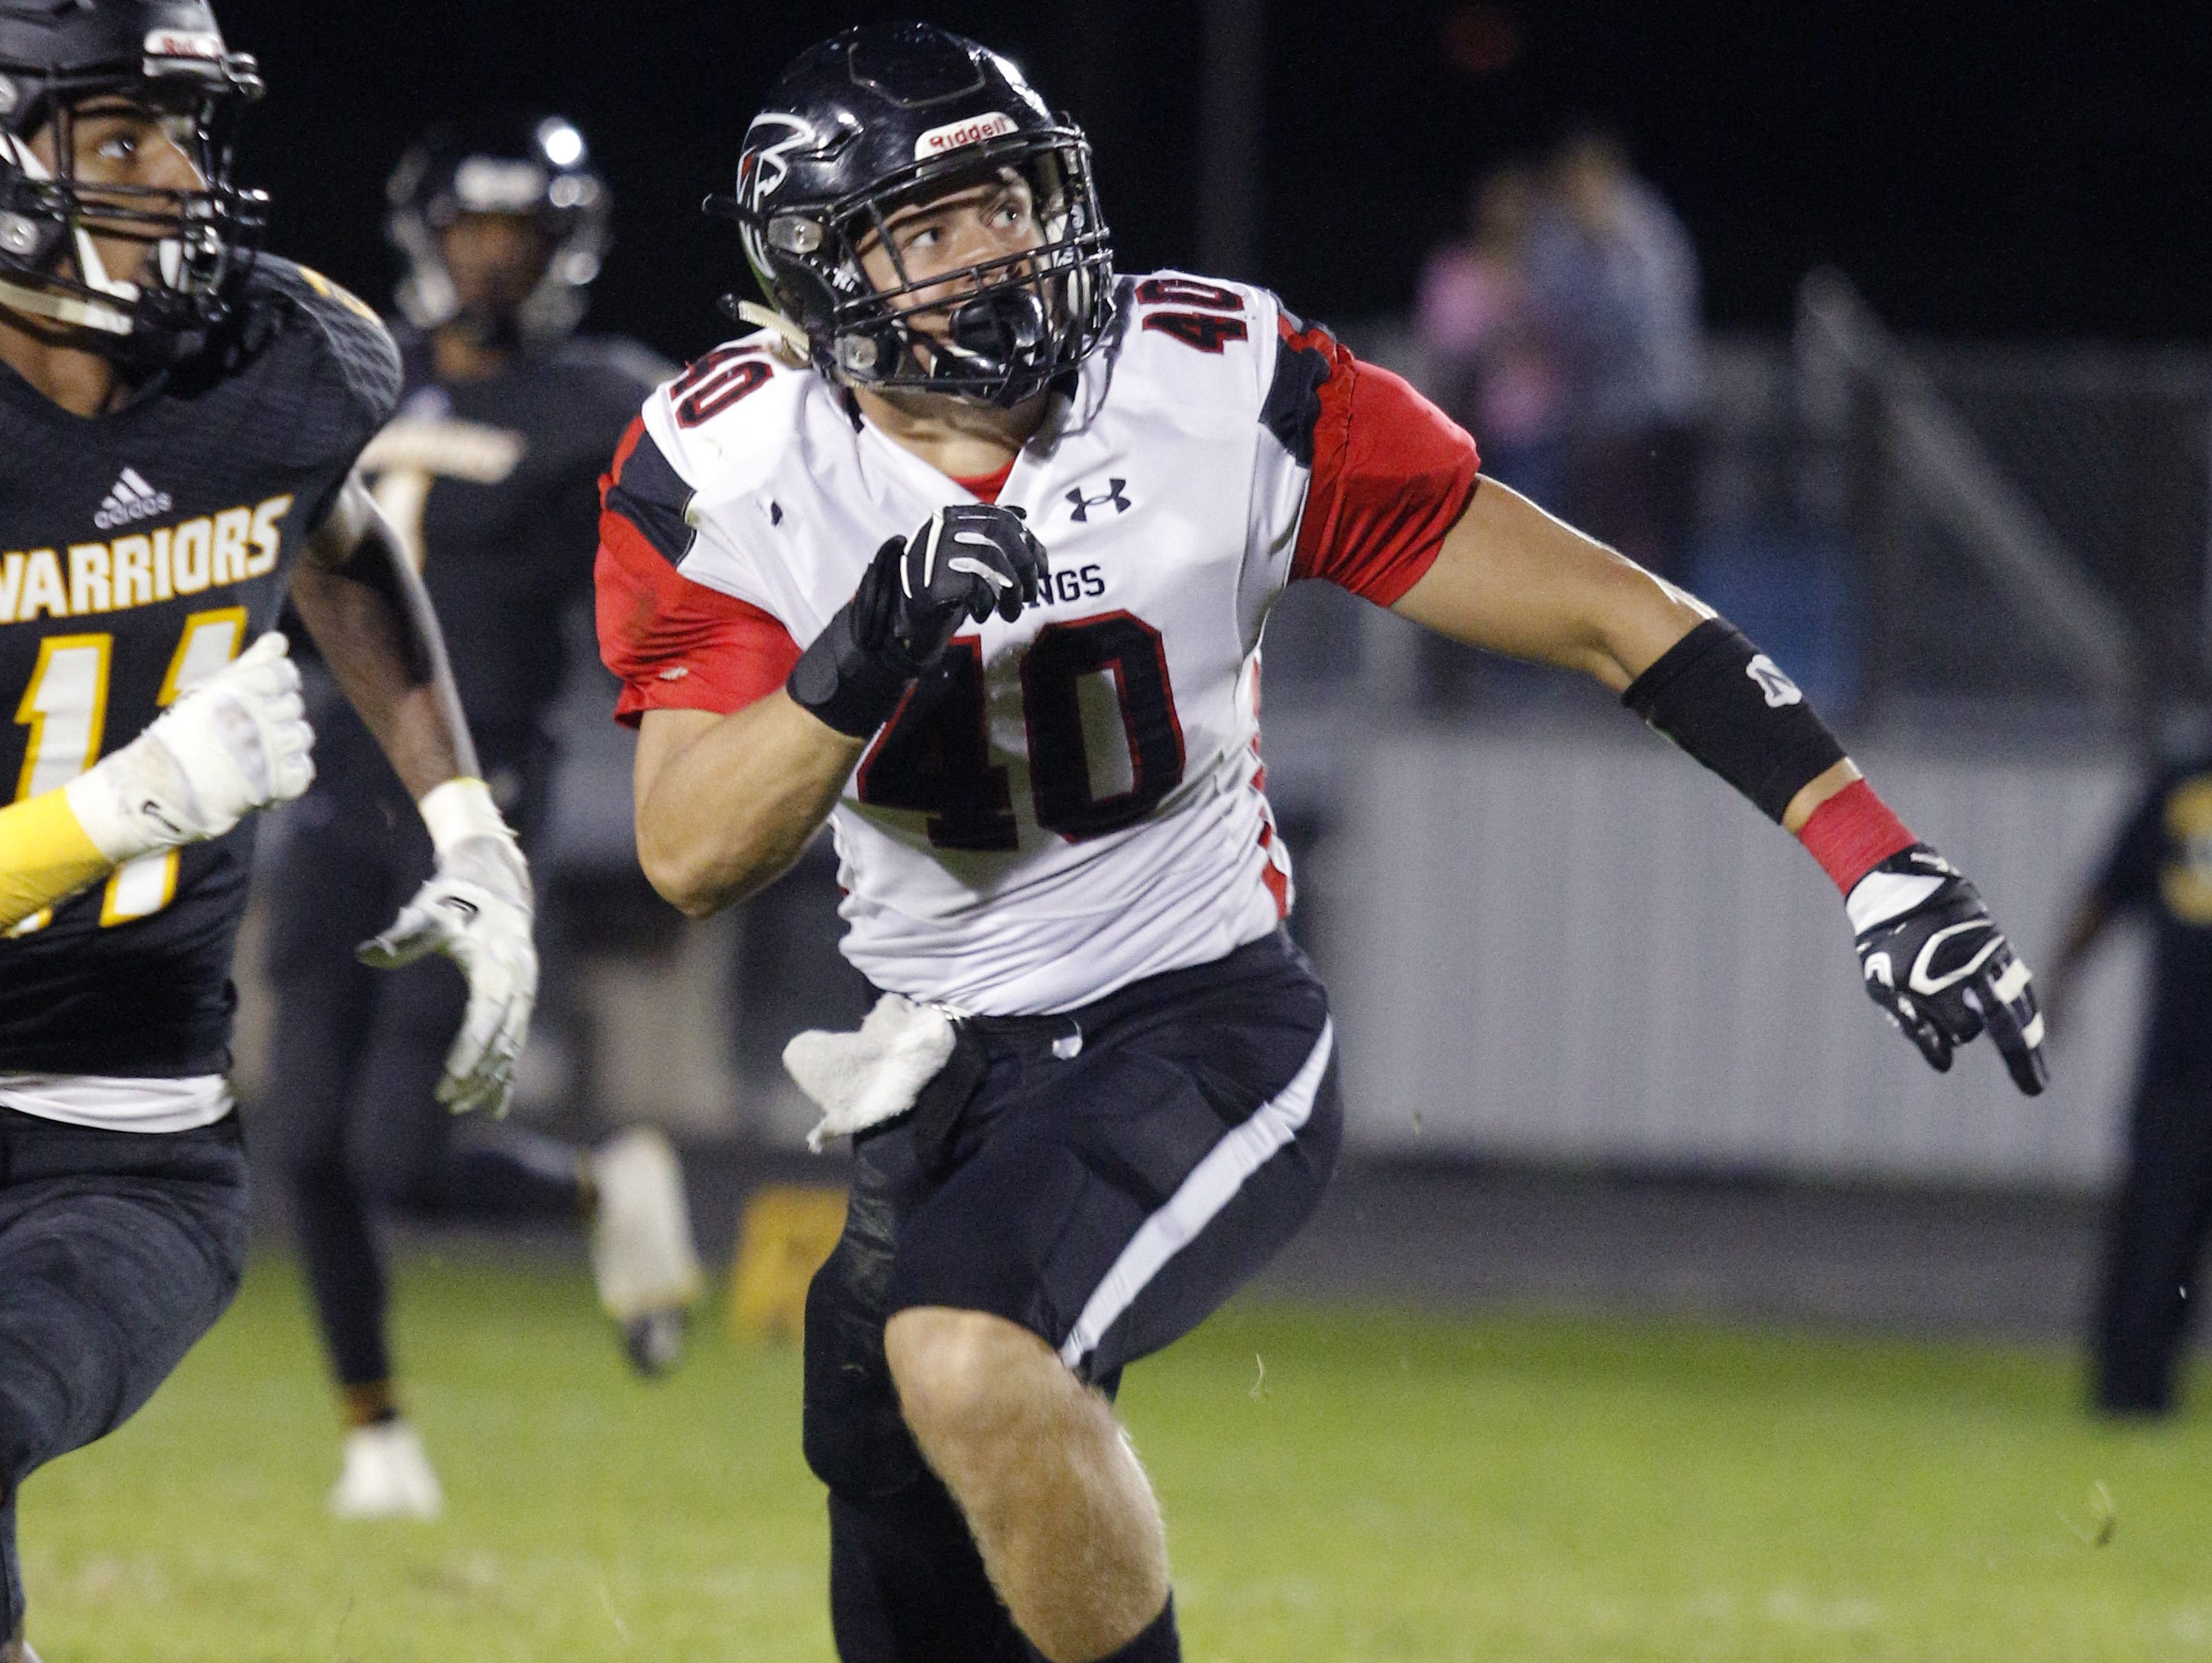 St. Johns' Tanner Motz remains committed to Western Michigan despite the recent departure of coach P.J. Fleck to Minnesota.